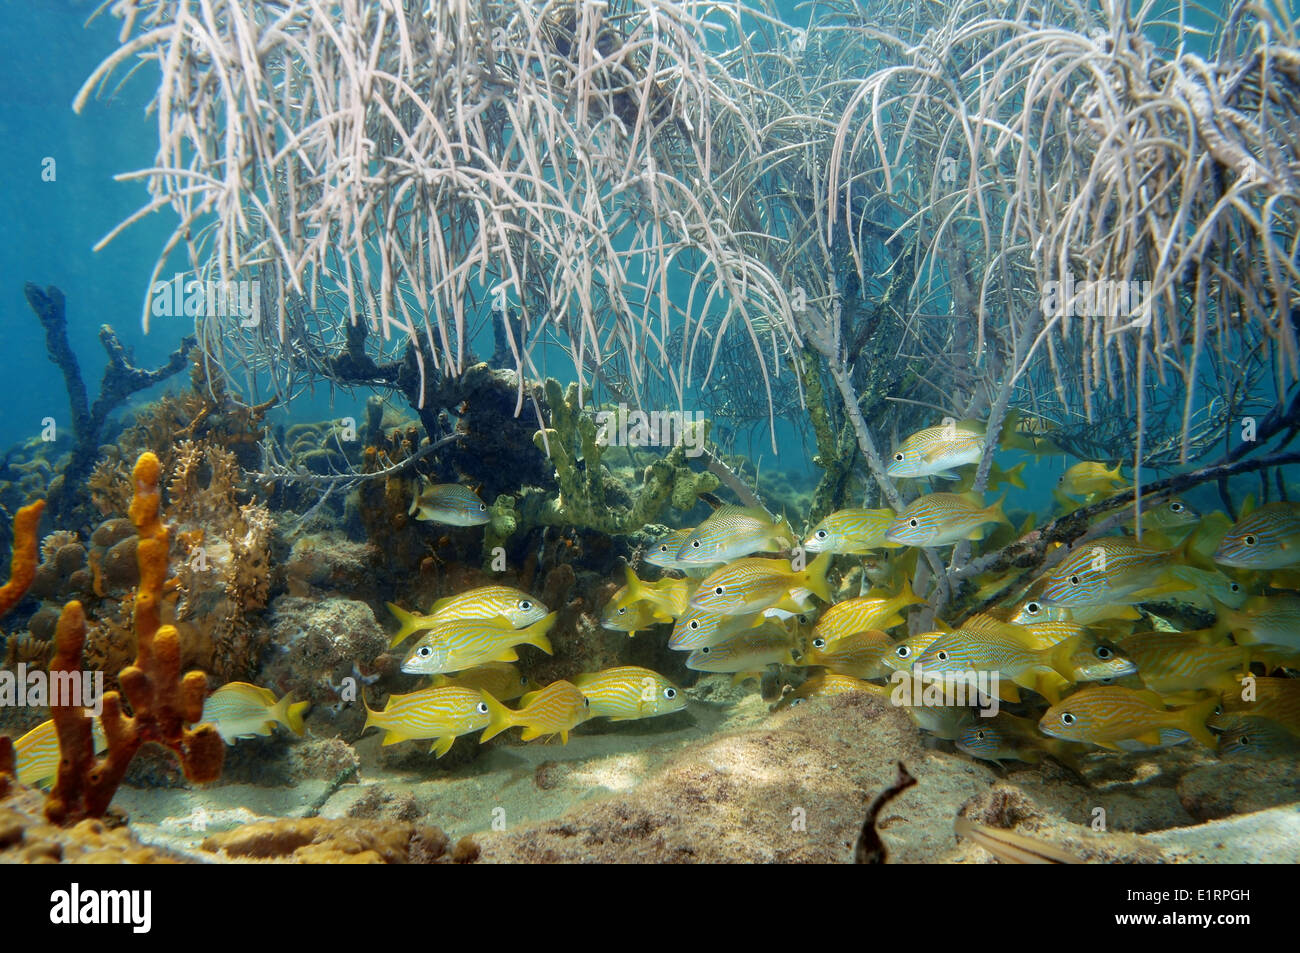 A shoal of grunt fish under gorgonian sea plume in a coral reef, Atlantic ocean - Stock Image